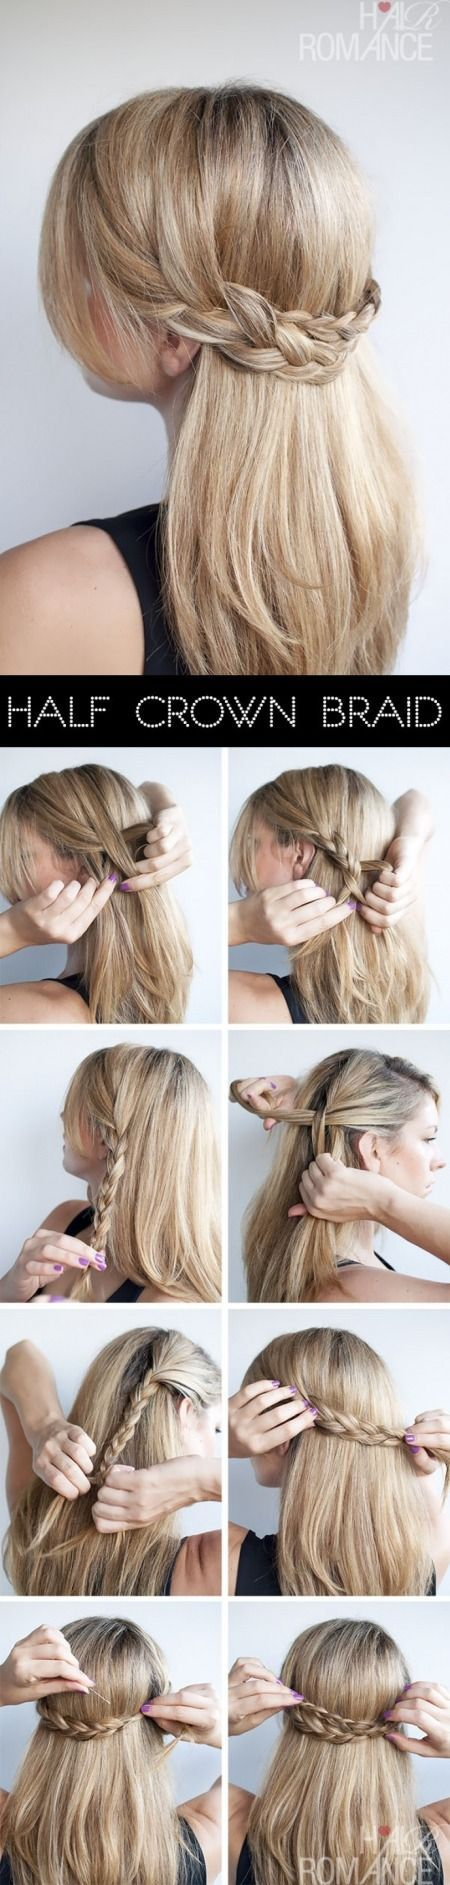 Fabulous 1000 Ideas About Easy Hairstyles On Pinterest Hairstyles For Hairstyles For Women Draintrainus